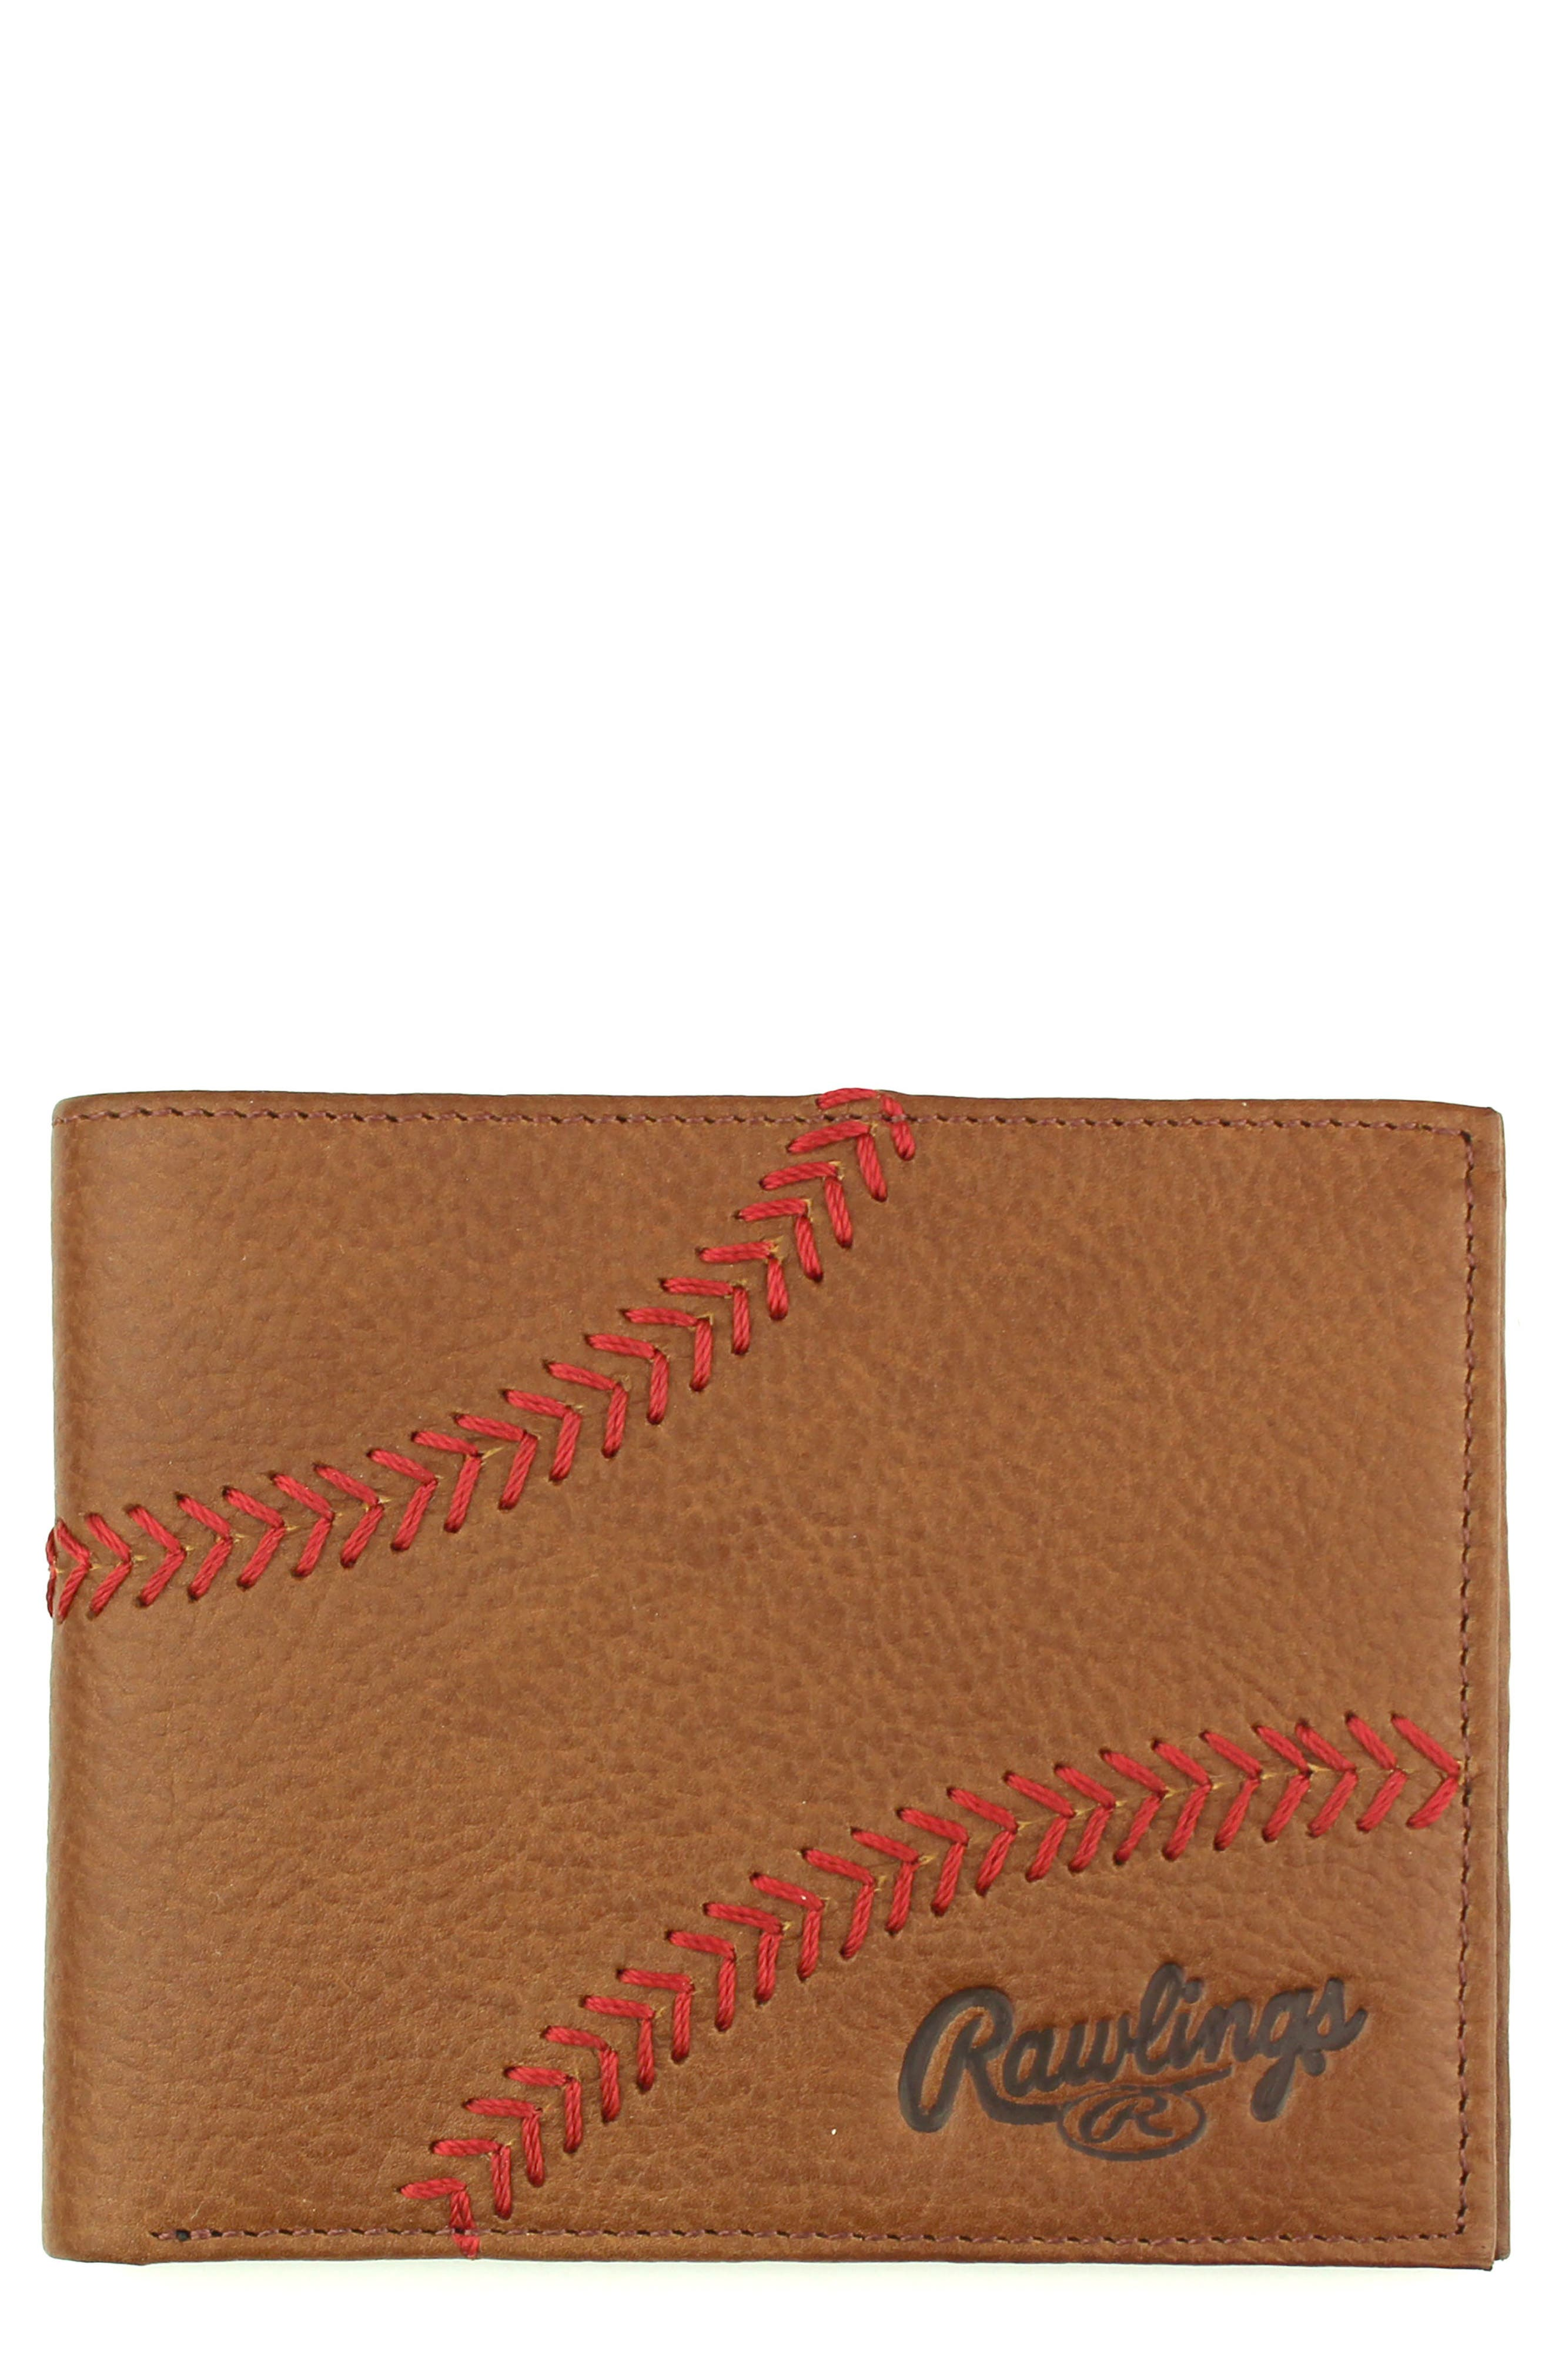 Home Run Bifold Leather Wallet,                         Main,                         color, Cognac